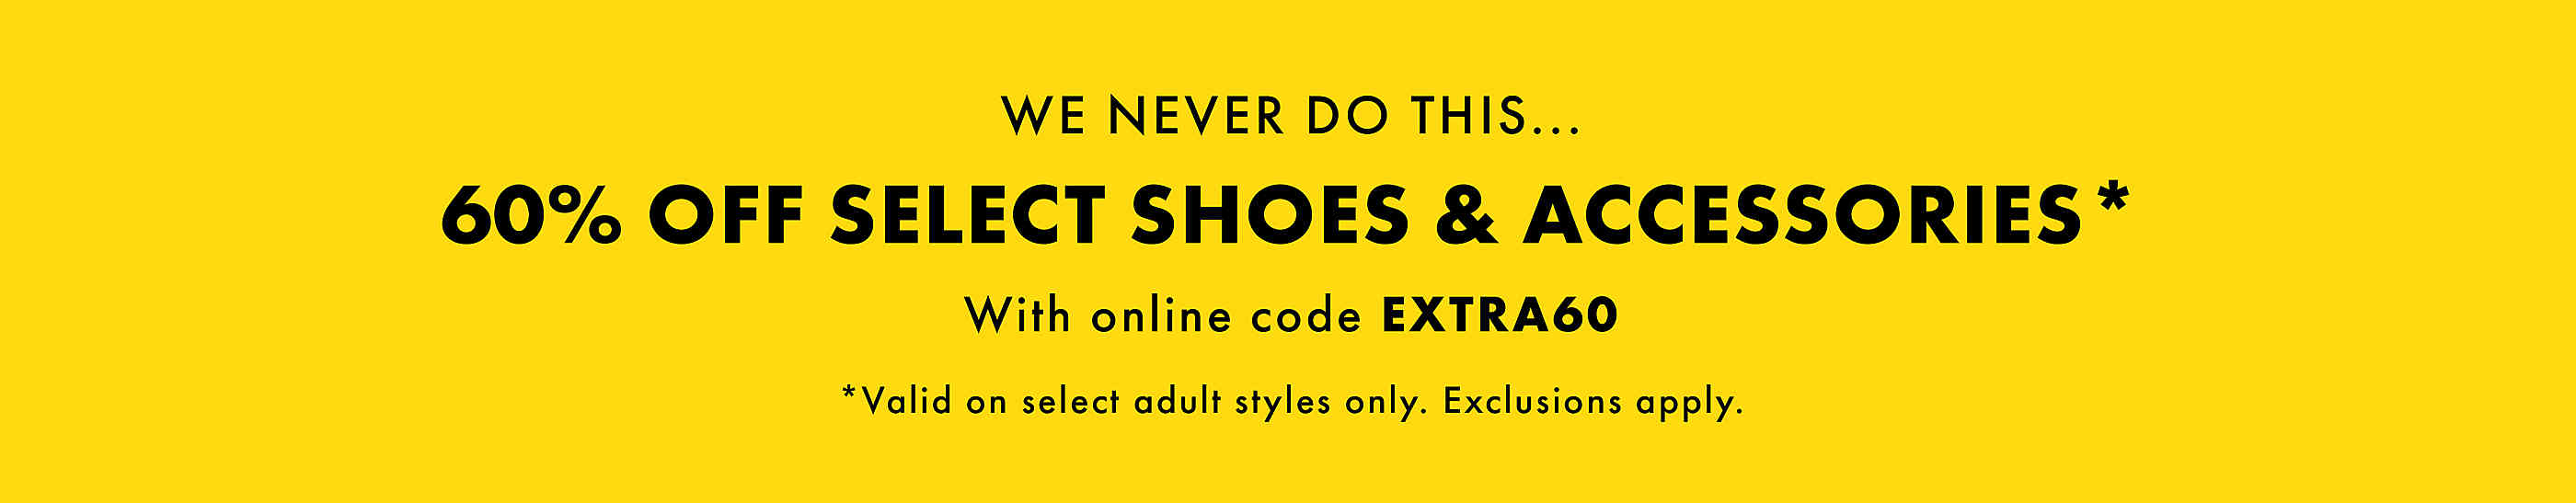 We never do this...60% off select shoes & accessories* With online code EXTRA60. *Valid on select adult styles only. Exclusions apply.